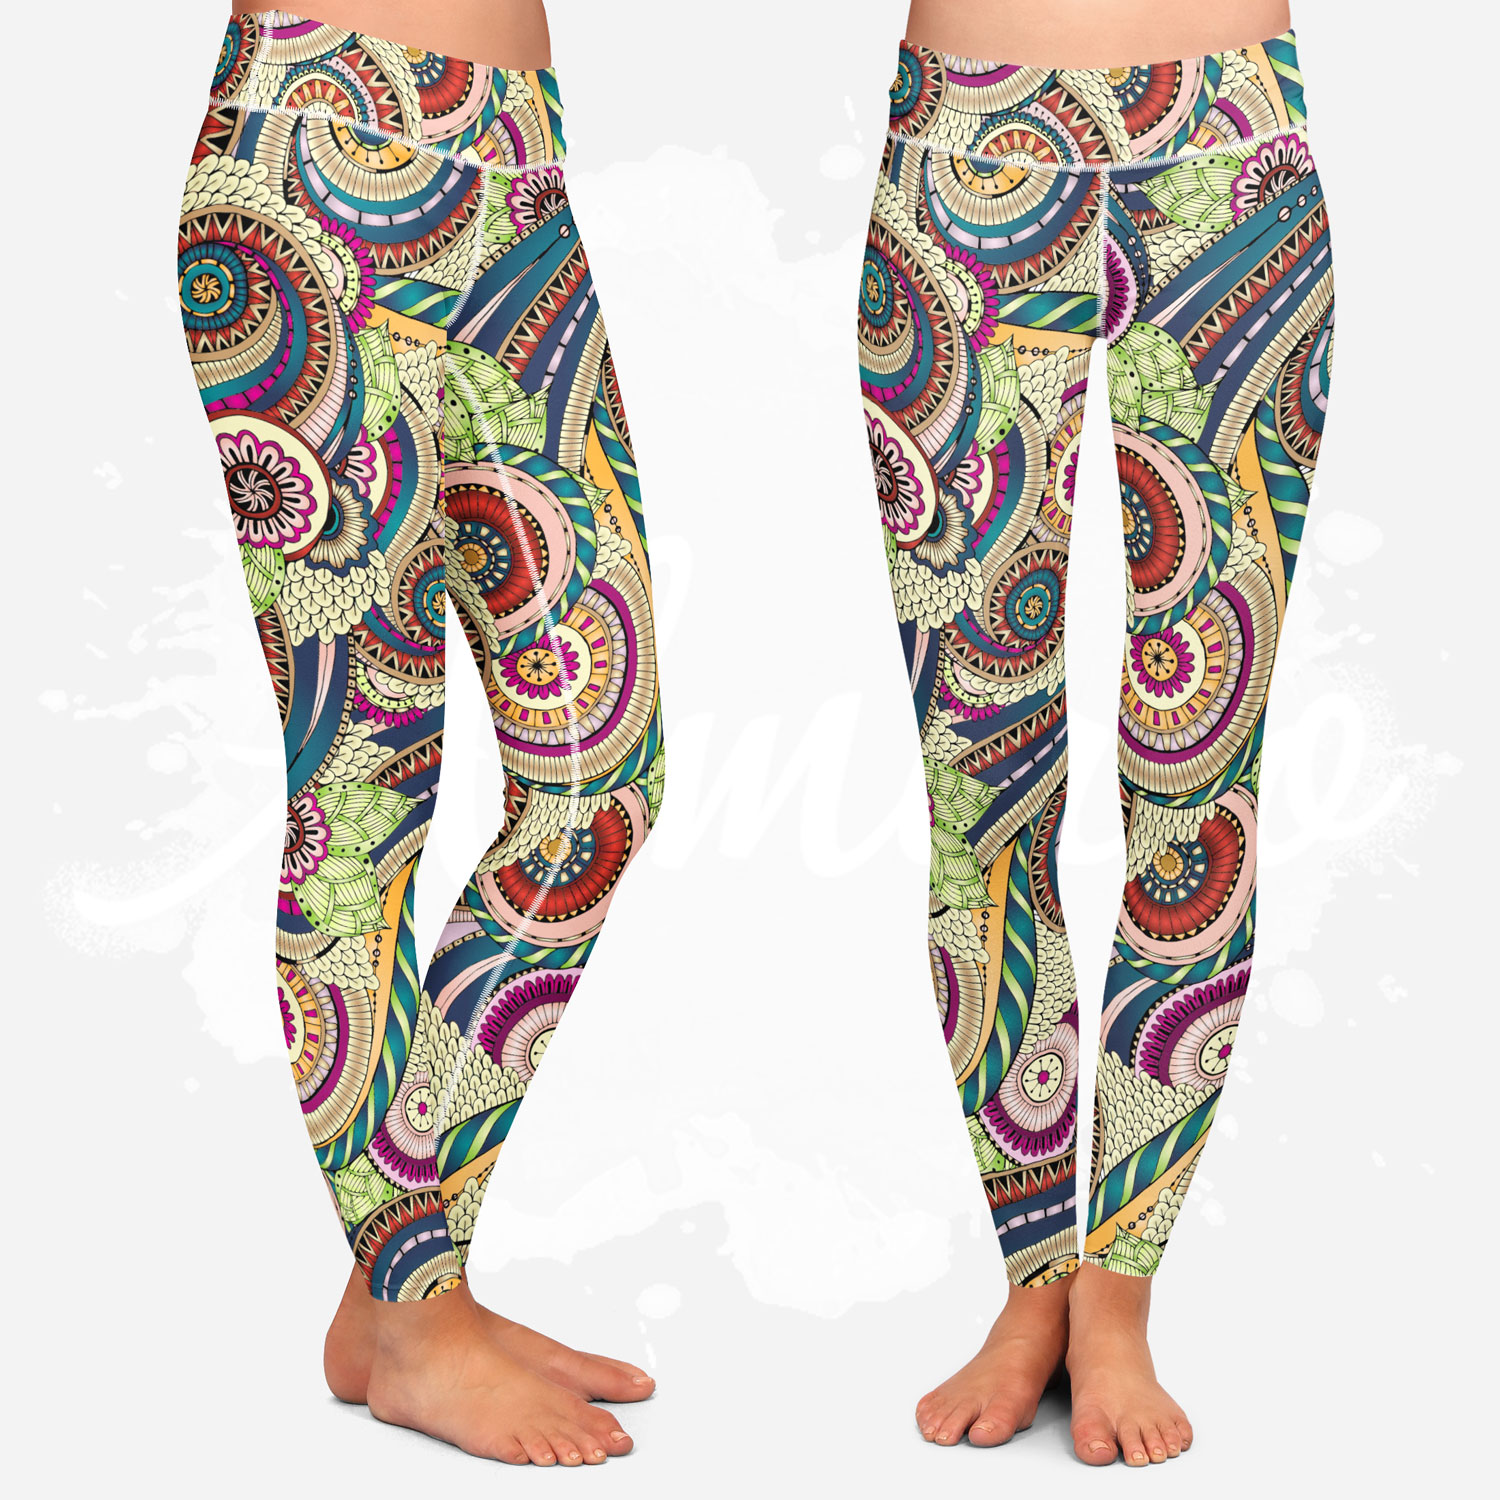 Leggings for women, julia snegireva, colorful mandala, yoga style